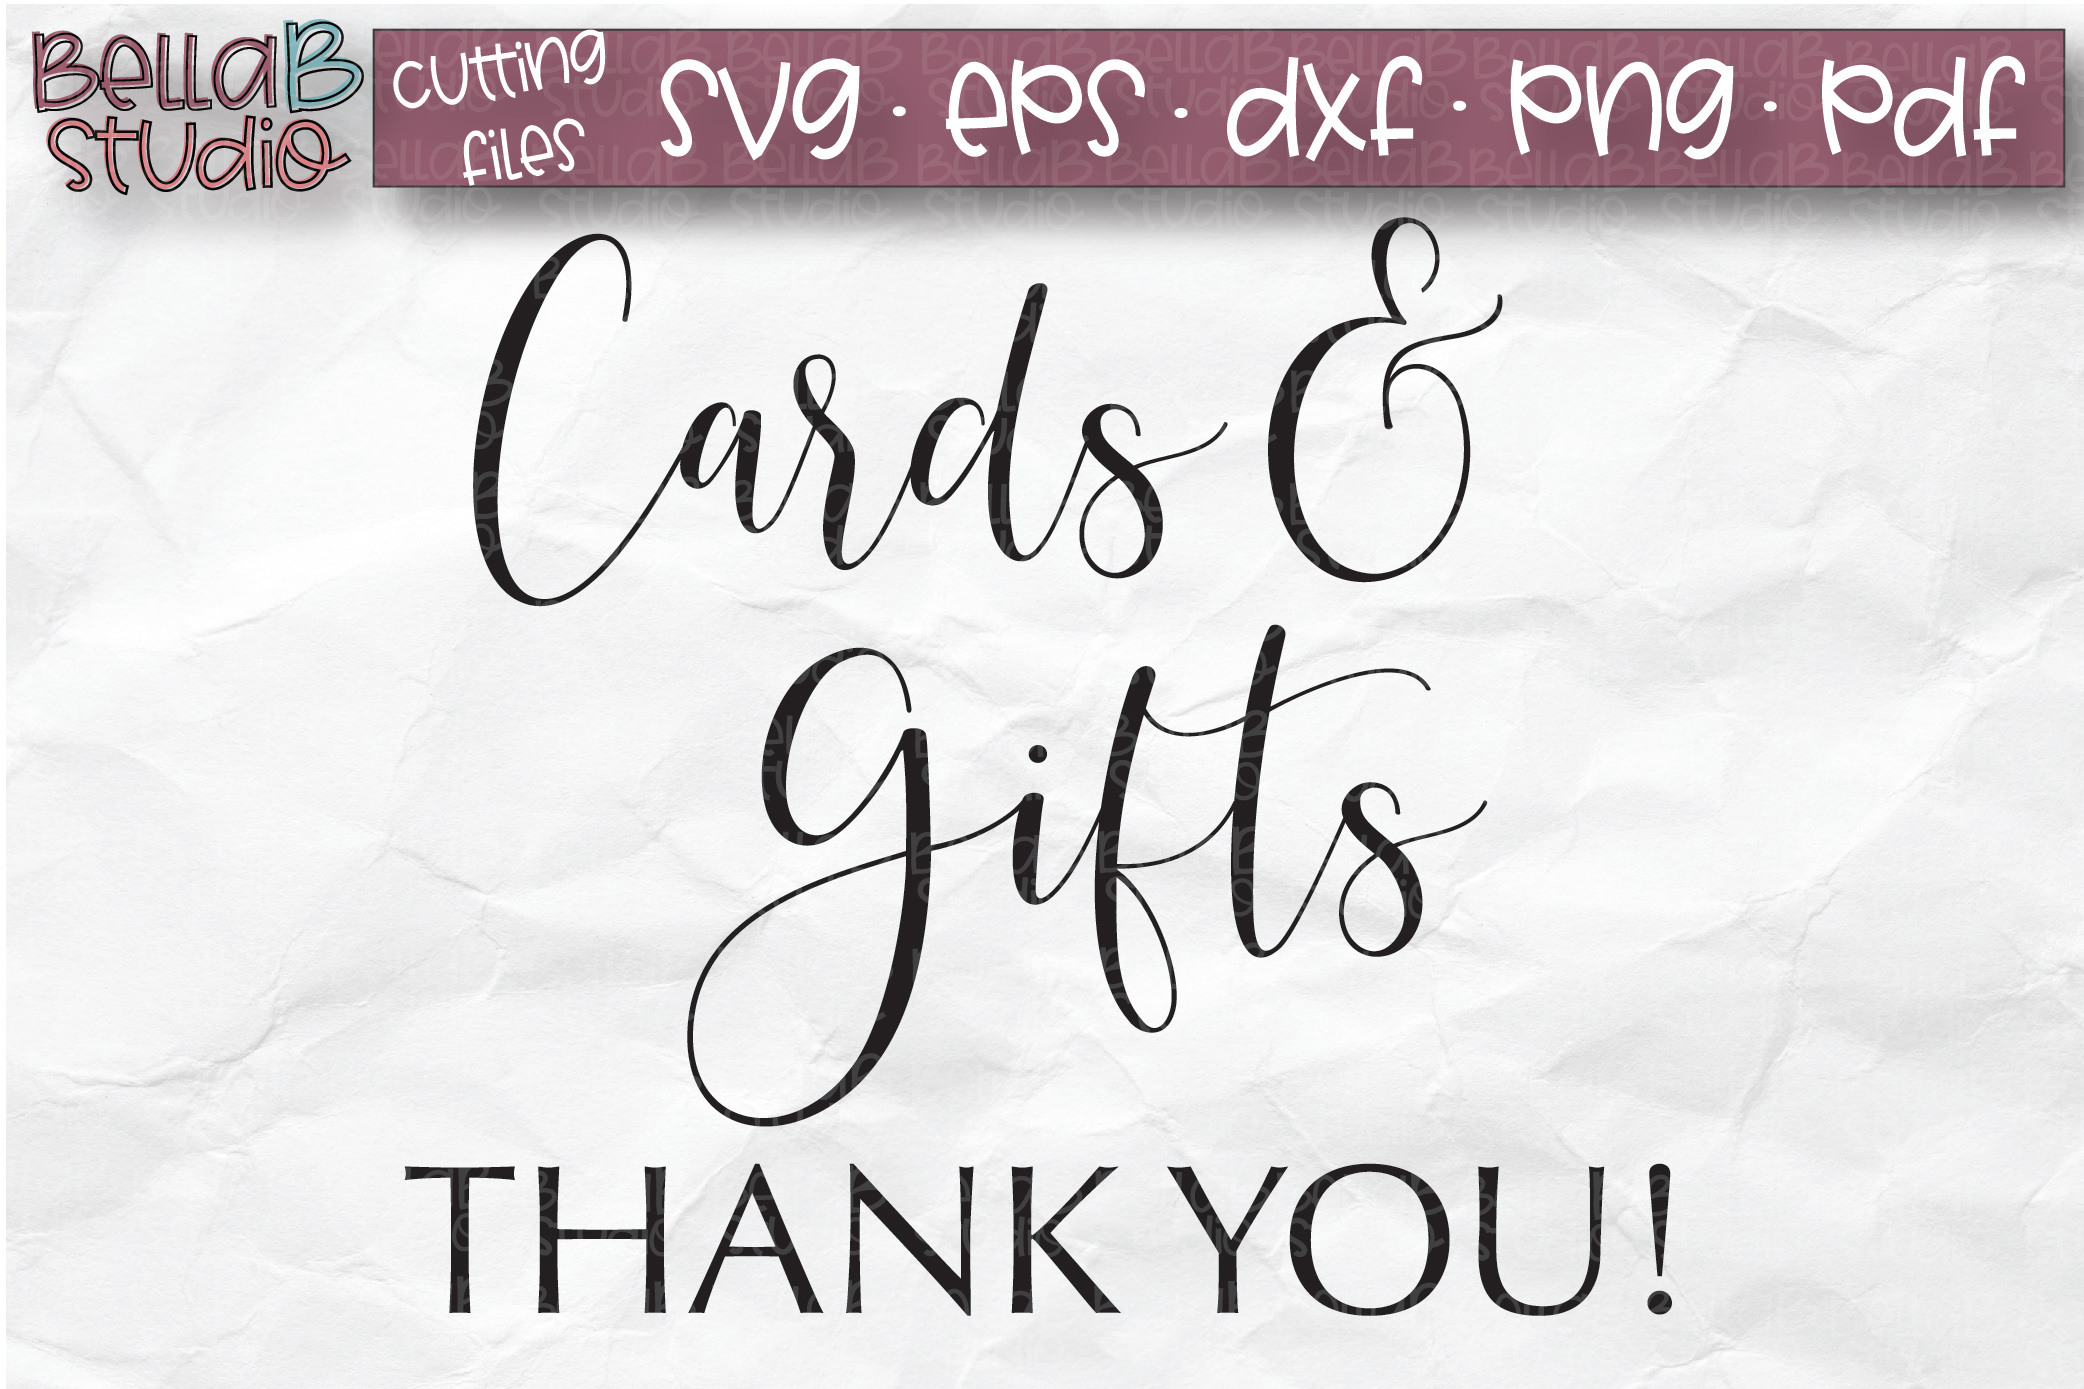 Wedding Sign SVG, Cards and Gifts SVG, Wedding SVG example image 2